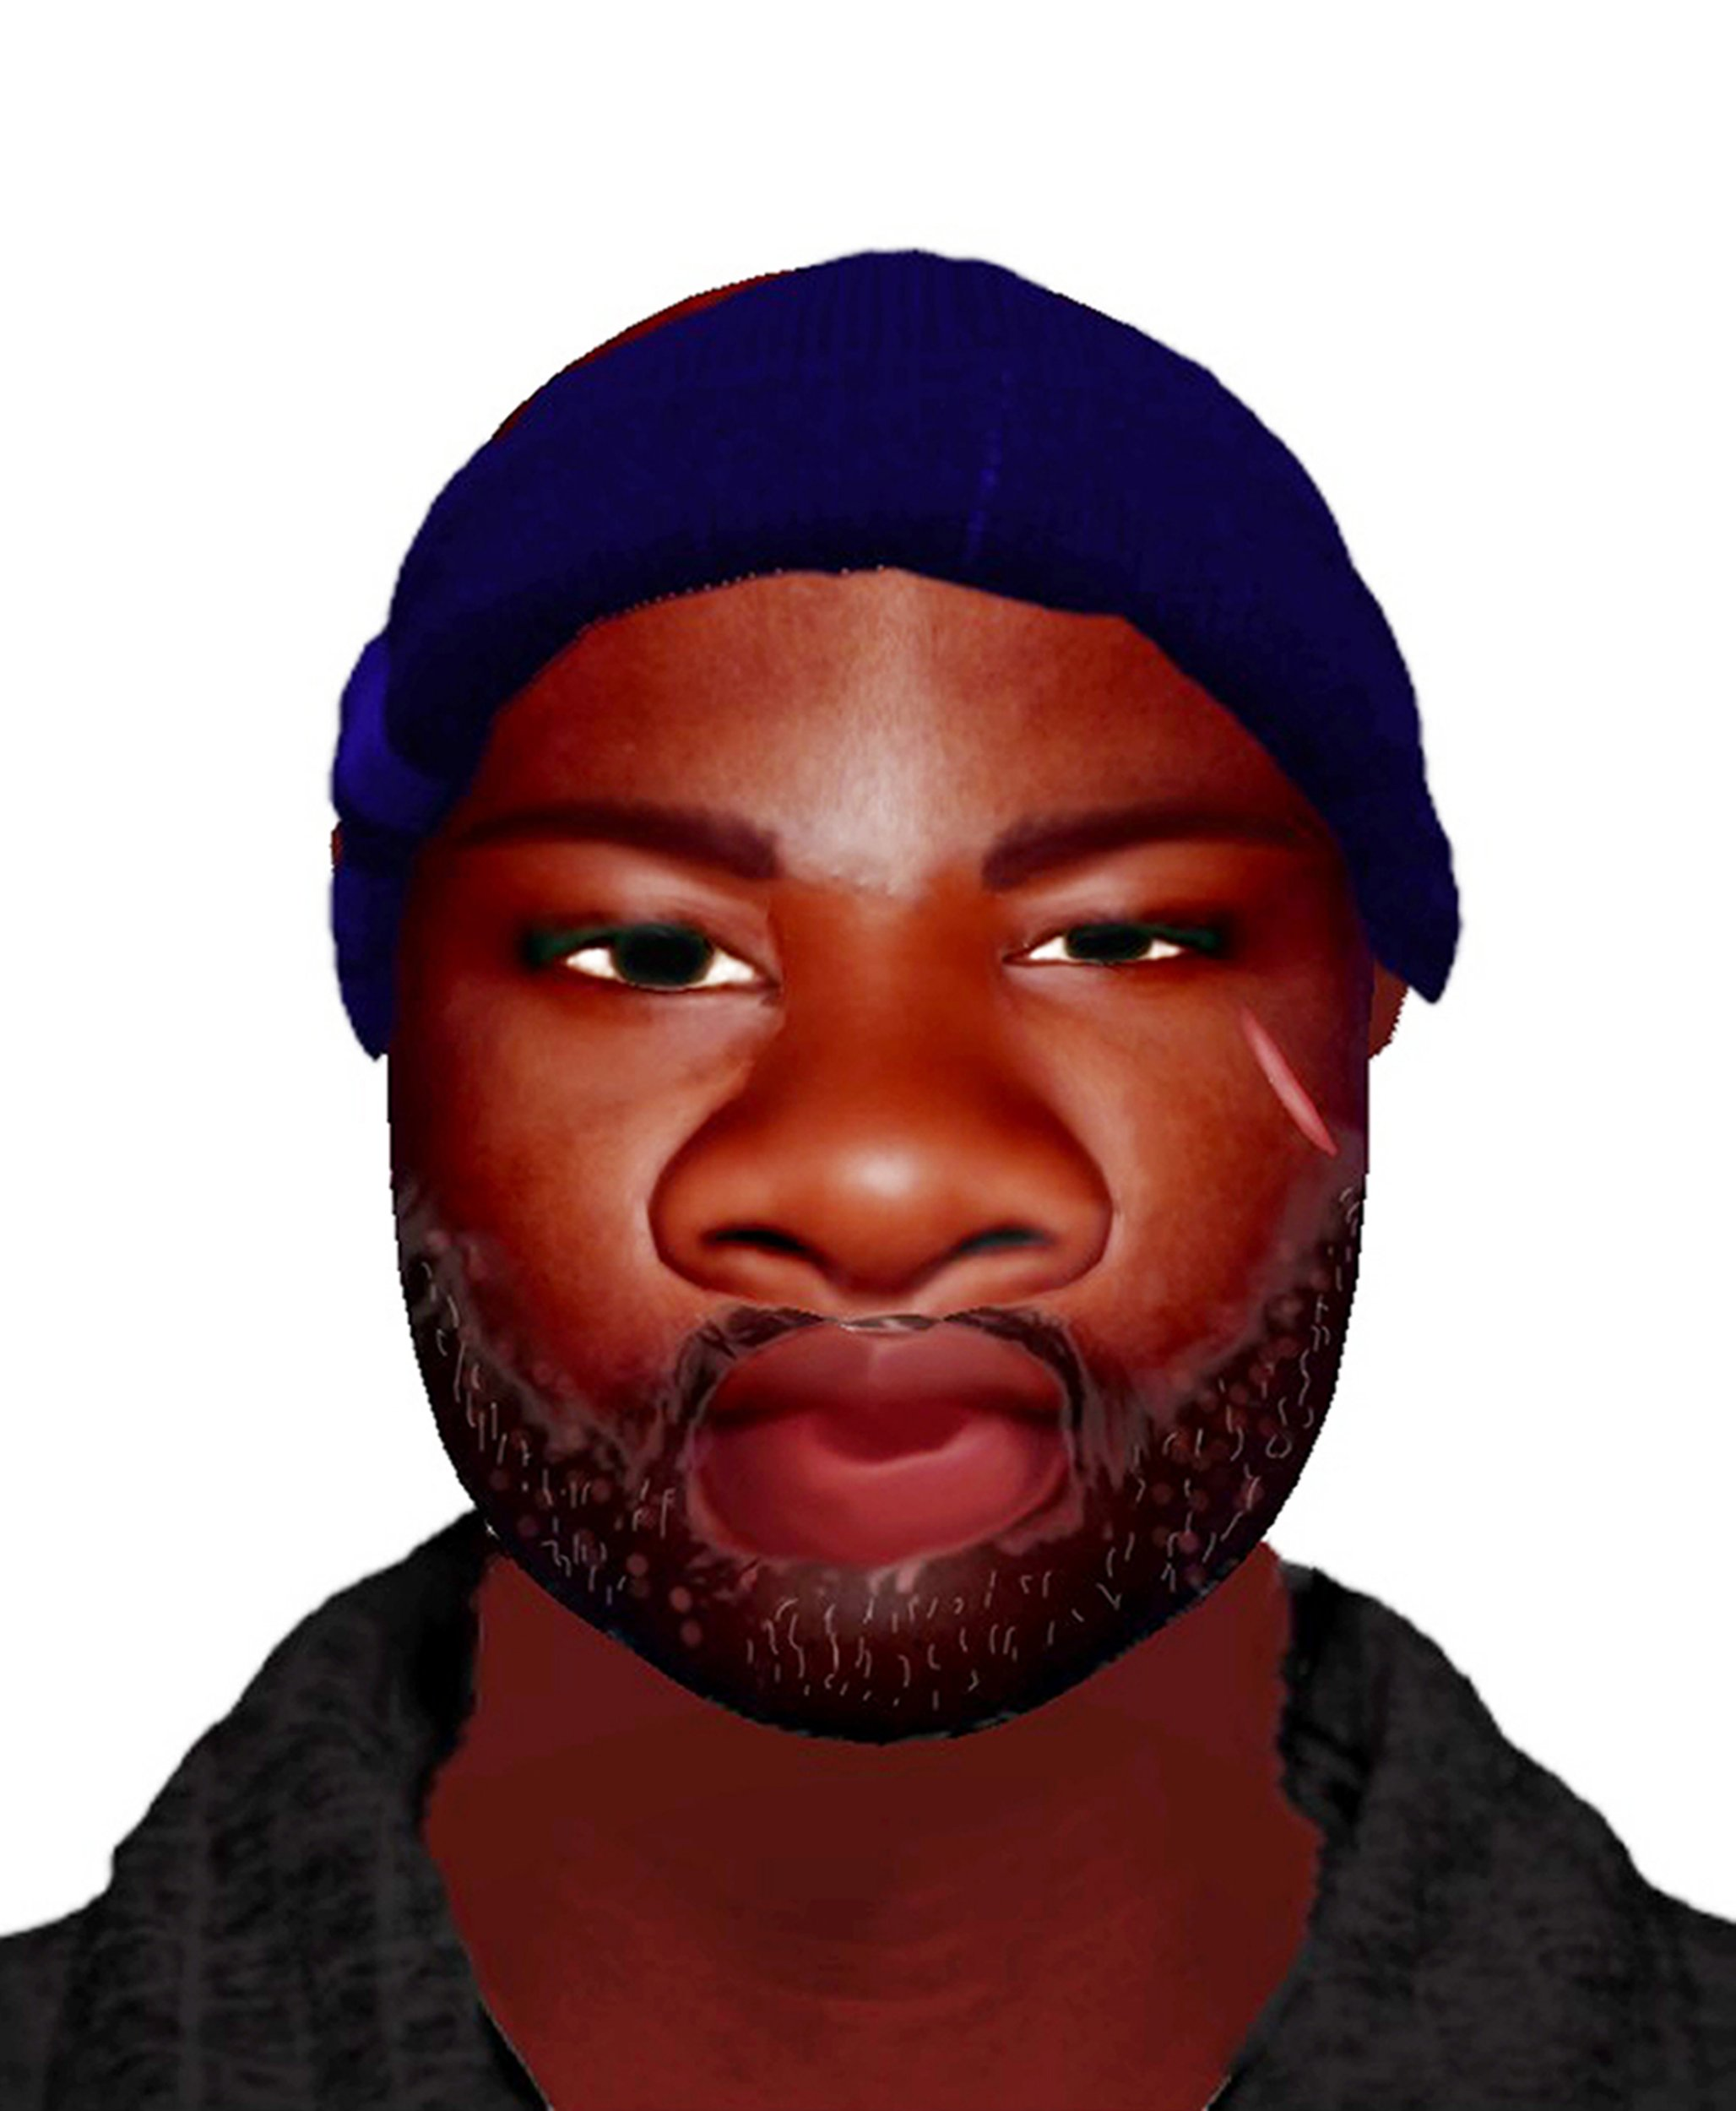 Metropolitan Police undated handout efit of the man suspected of grabbing an 11-year-old girl. PRESS ASSOCIATION Photo. Issue date: Friday September 30, 2016. The young victim, who was wearing her school uniform, was attacked from behind as she walked through Bannister House Estate in Hackney, east London, on Tuesday at around 8.30am. See PA story POLICE Hackney. Photo credit should read: Metropolitan Police/PA Wire NOTE TO EDITORS: This handout photo may only be used in for editorial reporting purposes for the contemporaneous illustration of events, things or the people in the image or facts mentioned in the caption. Reuse of the picture may require further permission from the copyright holder.